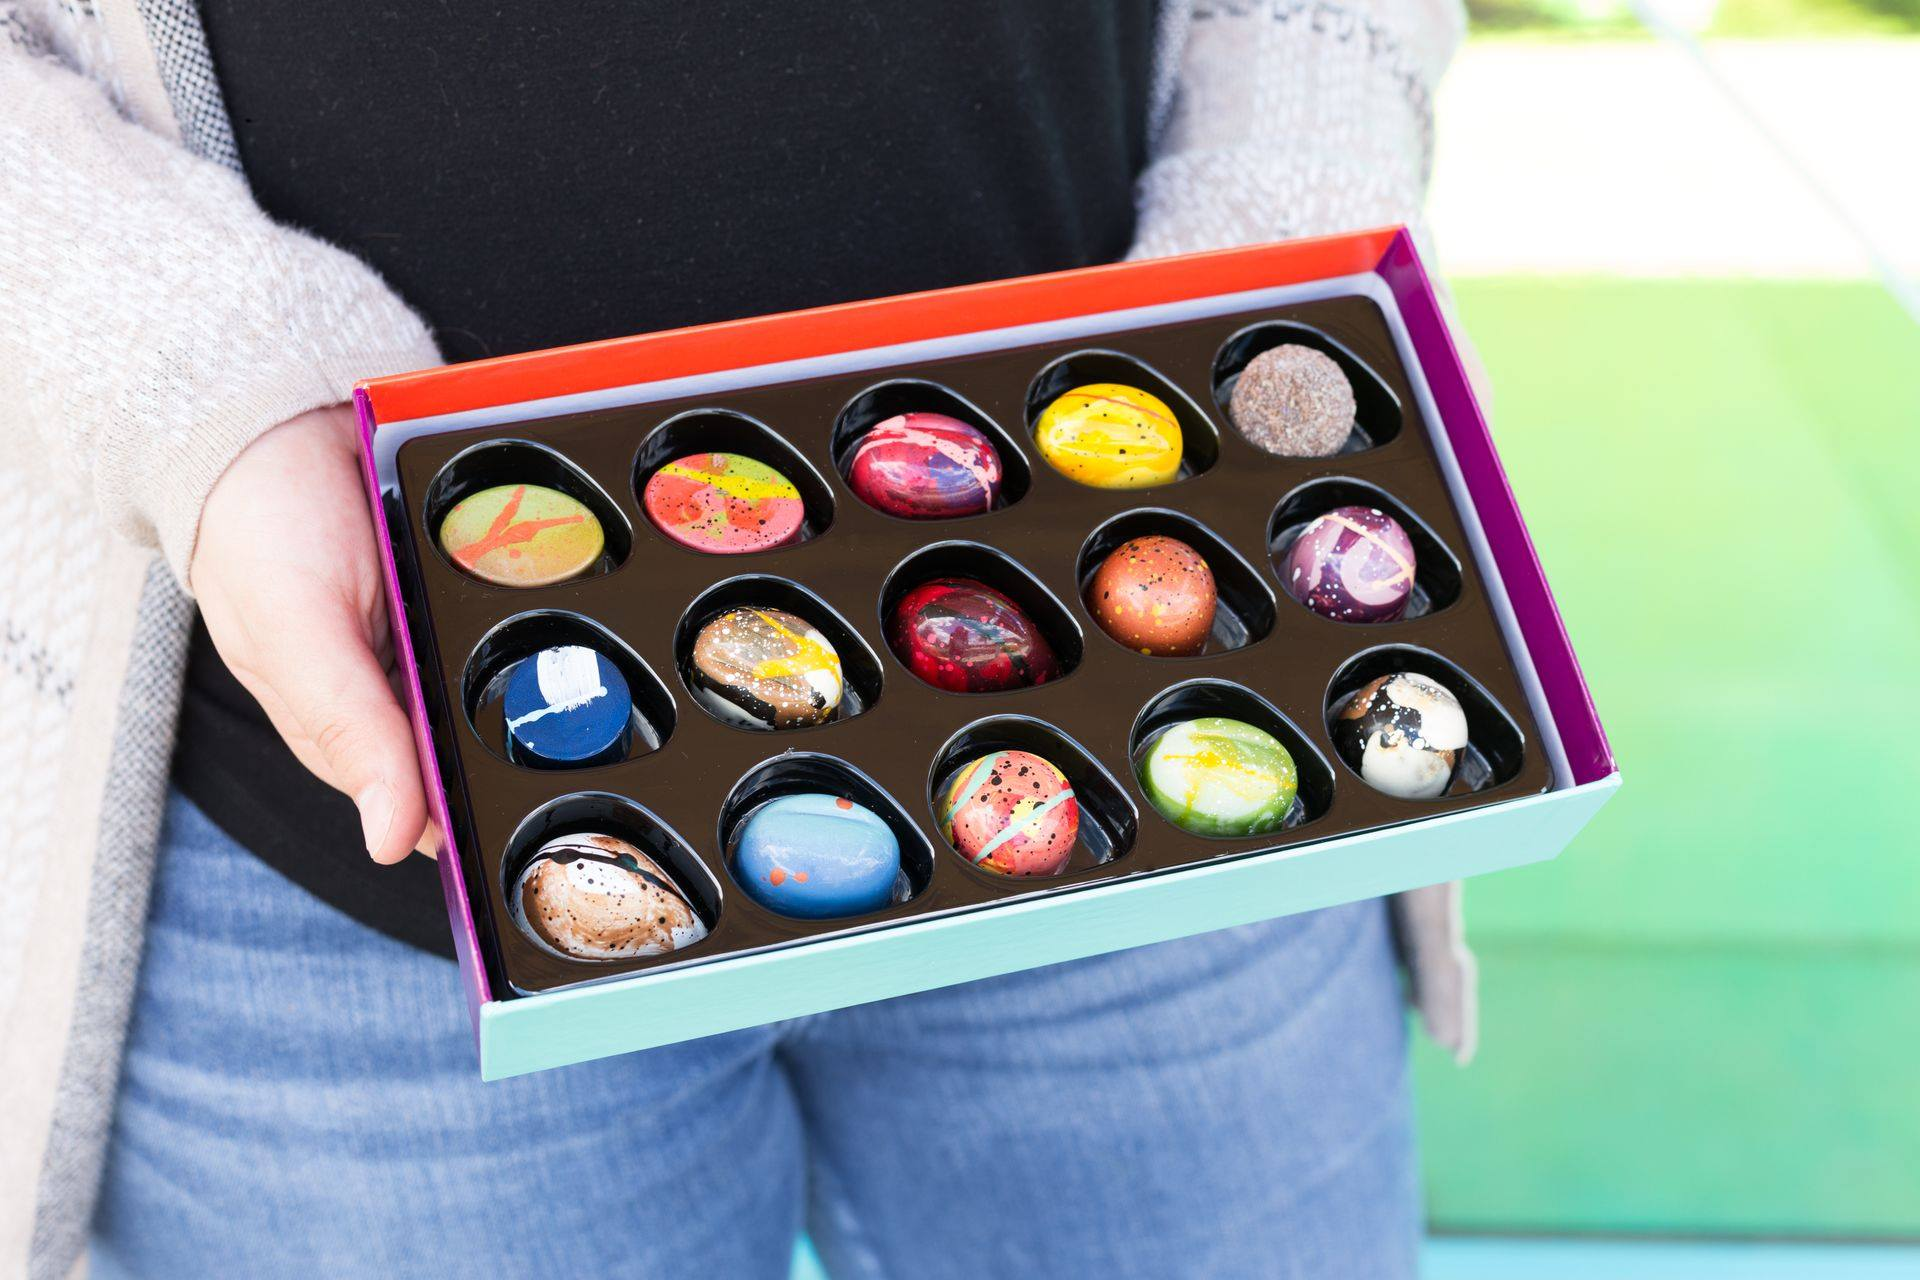 Kate Weiser Chocolate - If you're at Cake Bar, then you only need to go next door to see Kate Weiser's inventive and delicious bon bons. With dozens of flavors, you'll want to grab a box or two plus some macarons. (3011 Gulden Ln, Ste. 115) (Photo: Kate Weiser Chocolate)